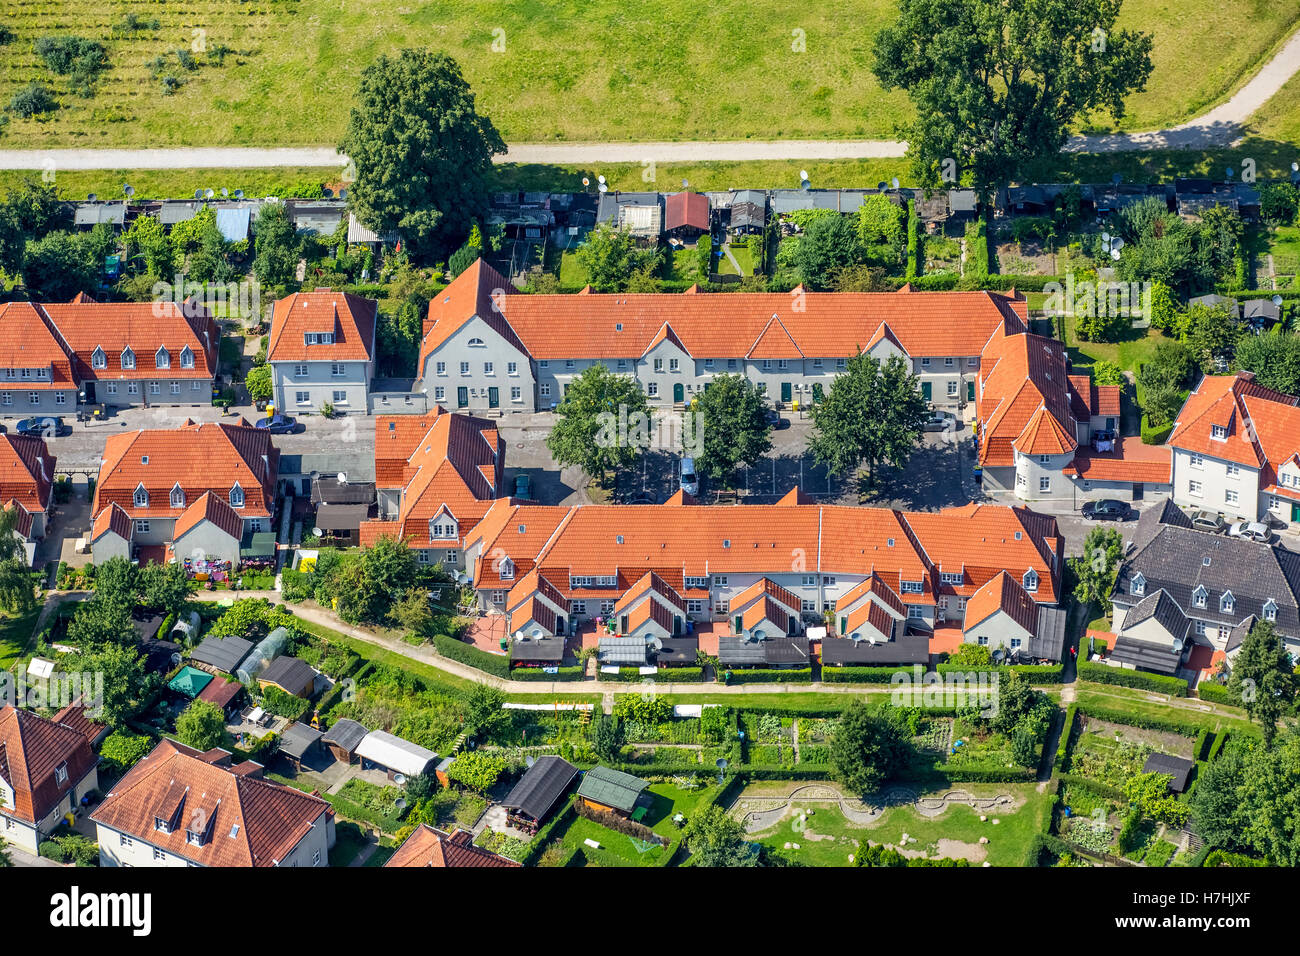 Aerial view, settlement Schüngelberg, historical mining community to collery Hugo, THS, trust company,brick buildings Stock Photo